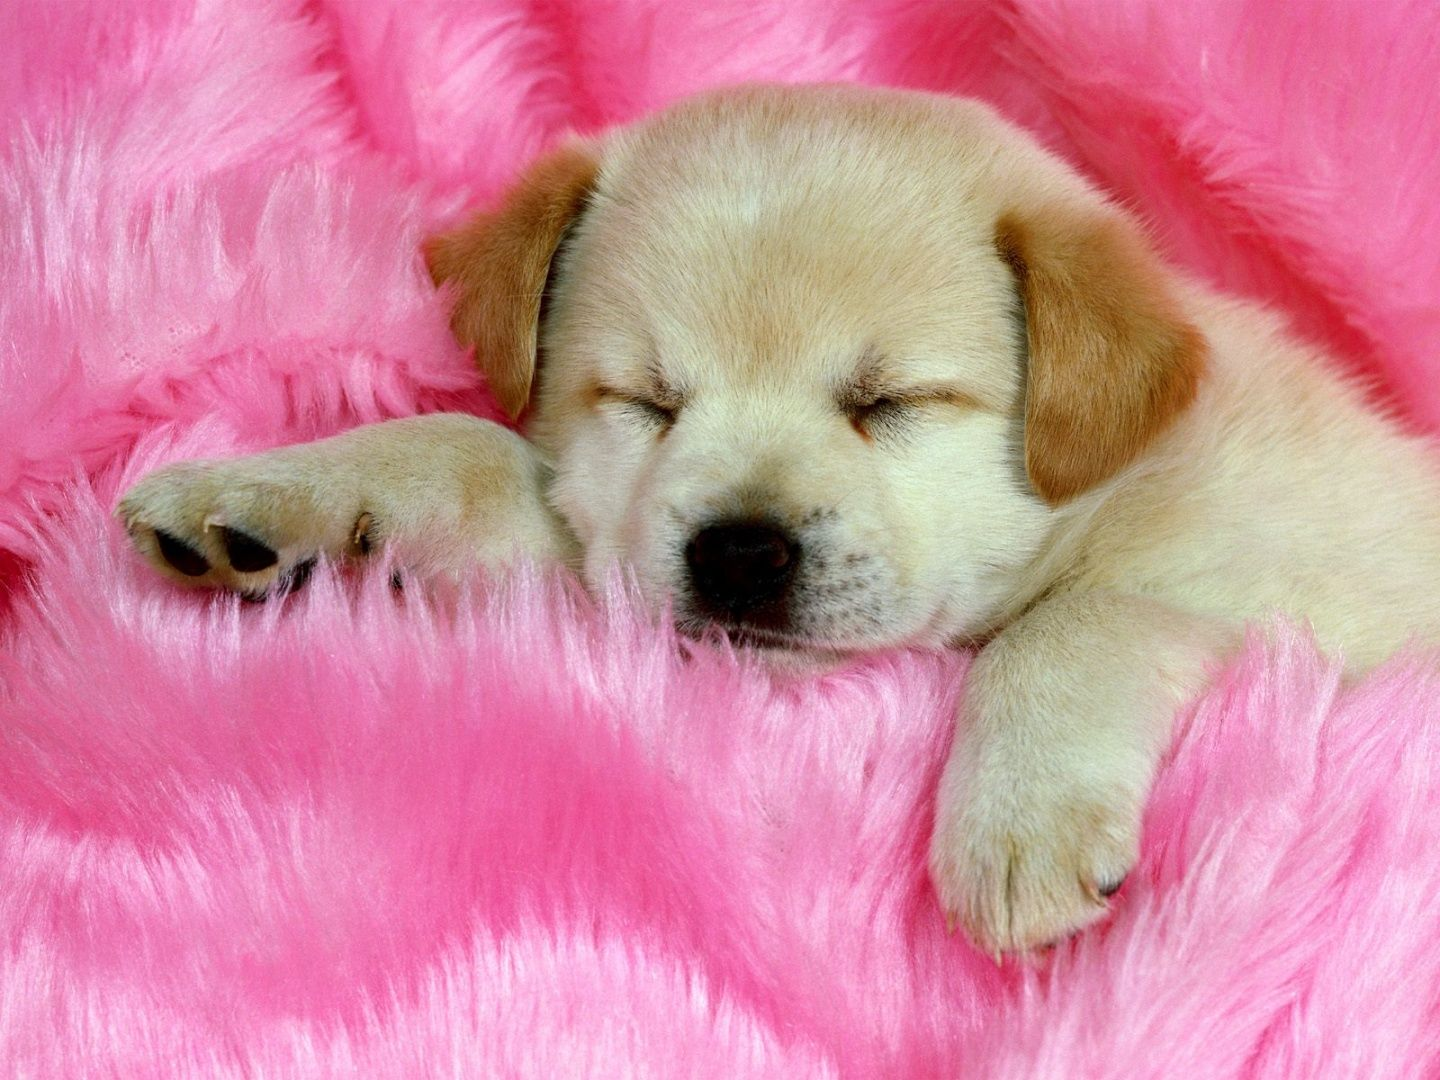 Cute And Adorable Puppy Pictures Cute Dog Wallpaper Cute Puppy Wallpaper Sleeping Puppies